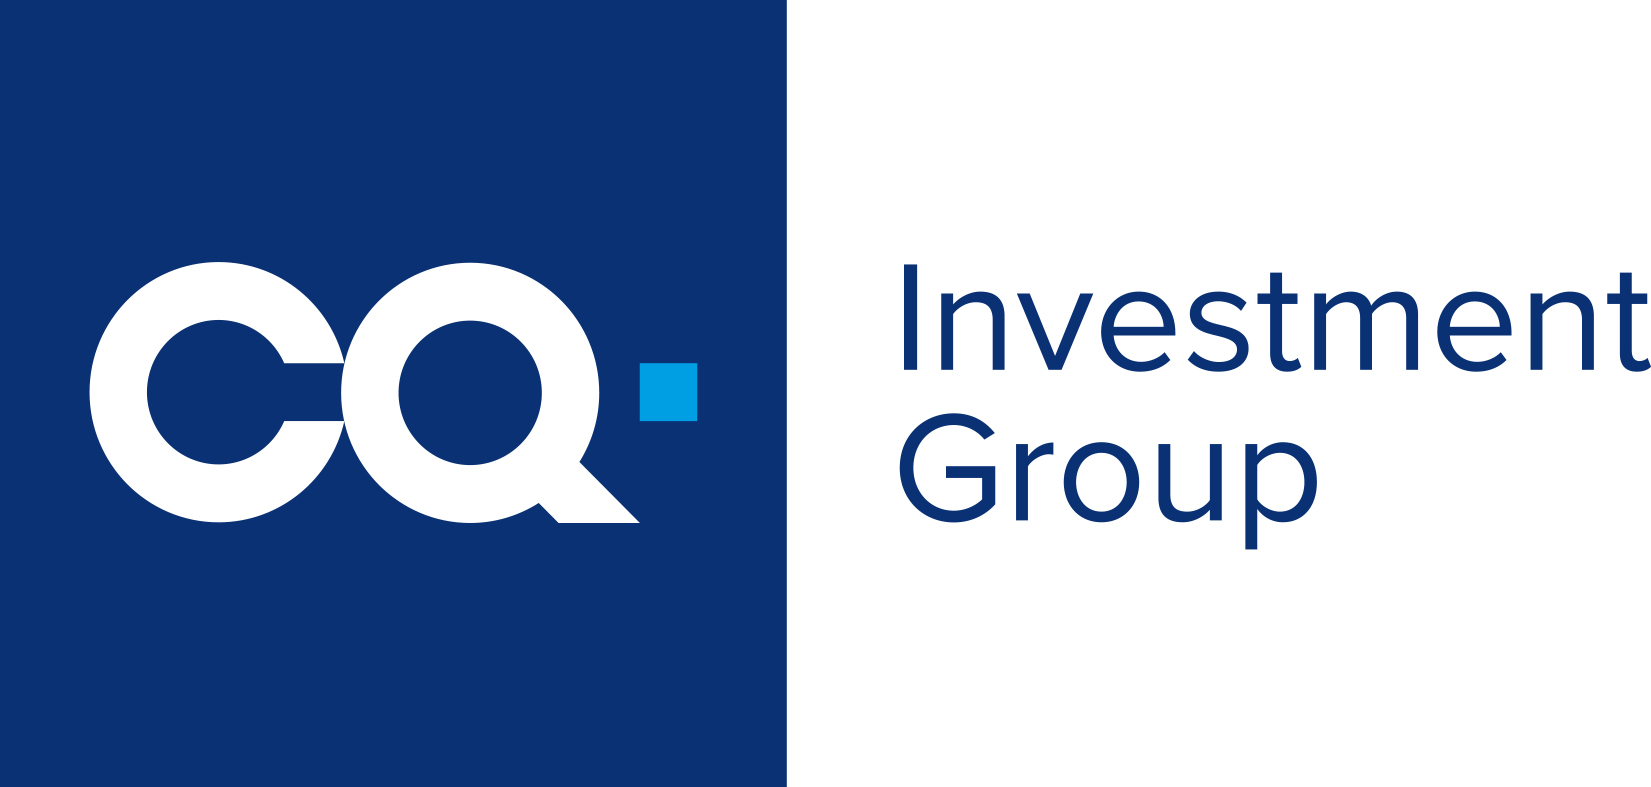 C-QUADRAT Investment AG